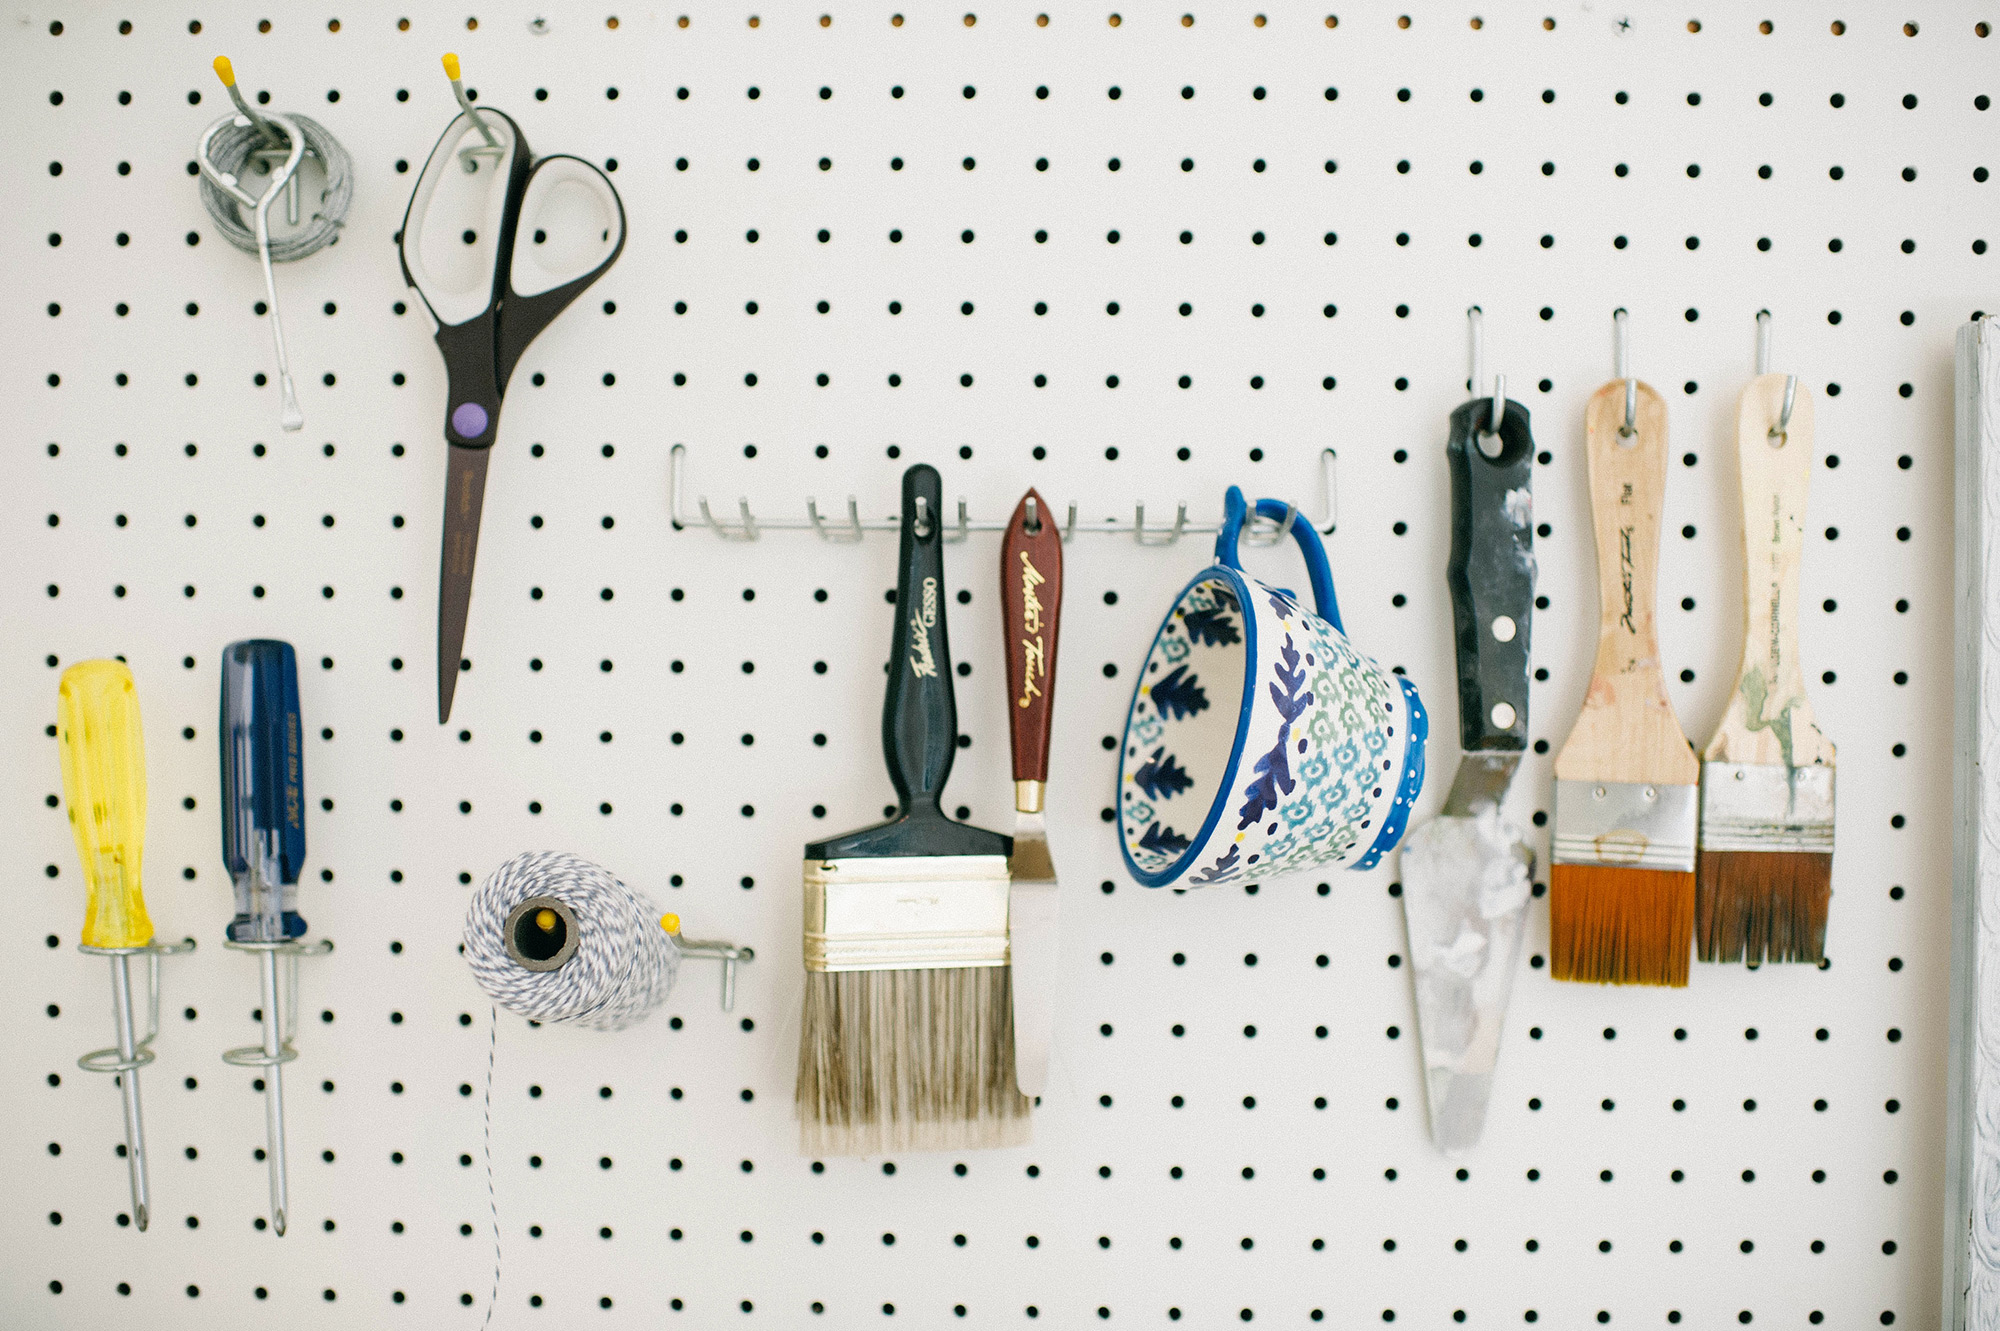 Createspaces #12: A look at where Kate Jury's vibrant masterpieces are made | Crafted by Pam